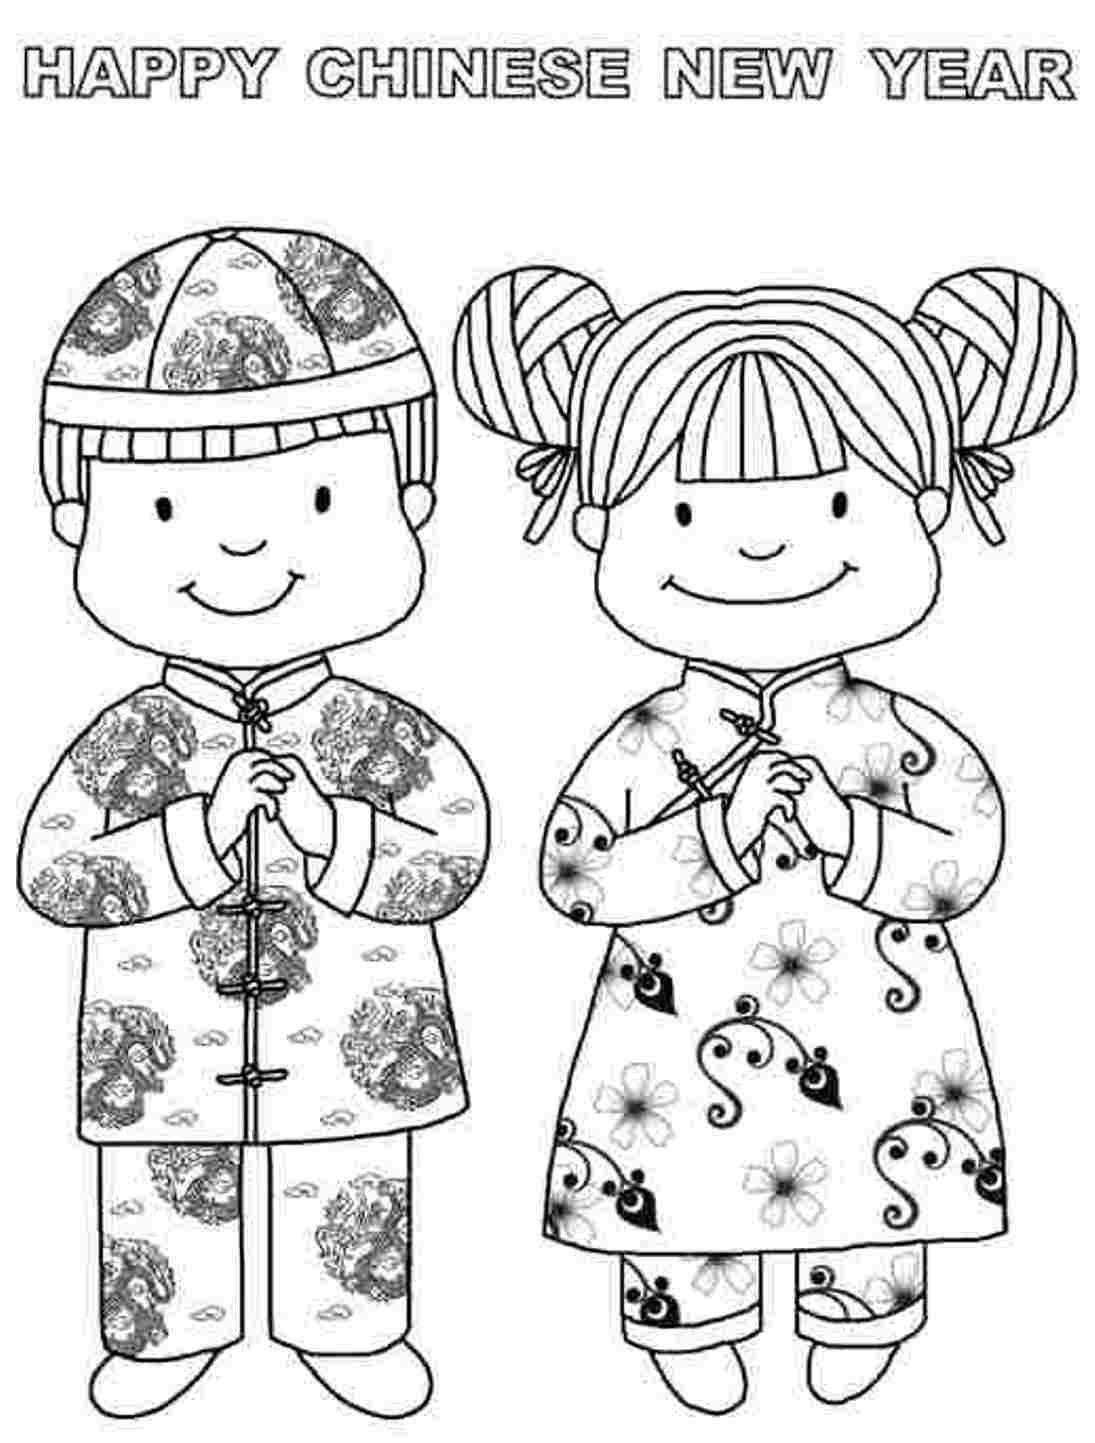 Best Happy Chinese New Year Black And White Clipart.